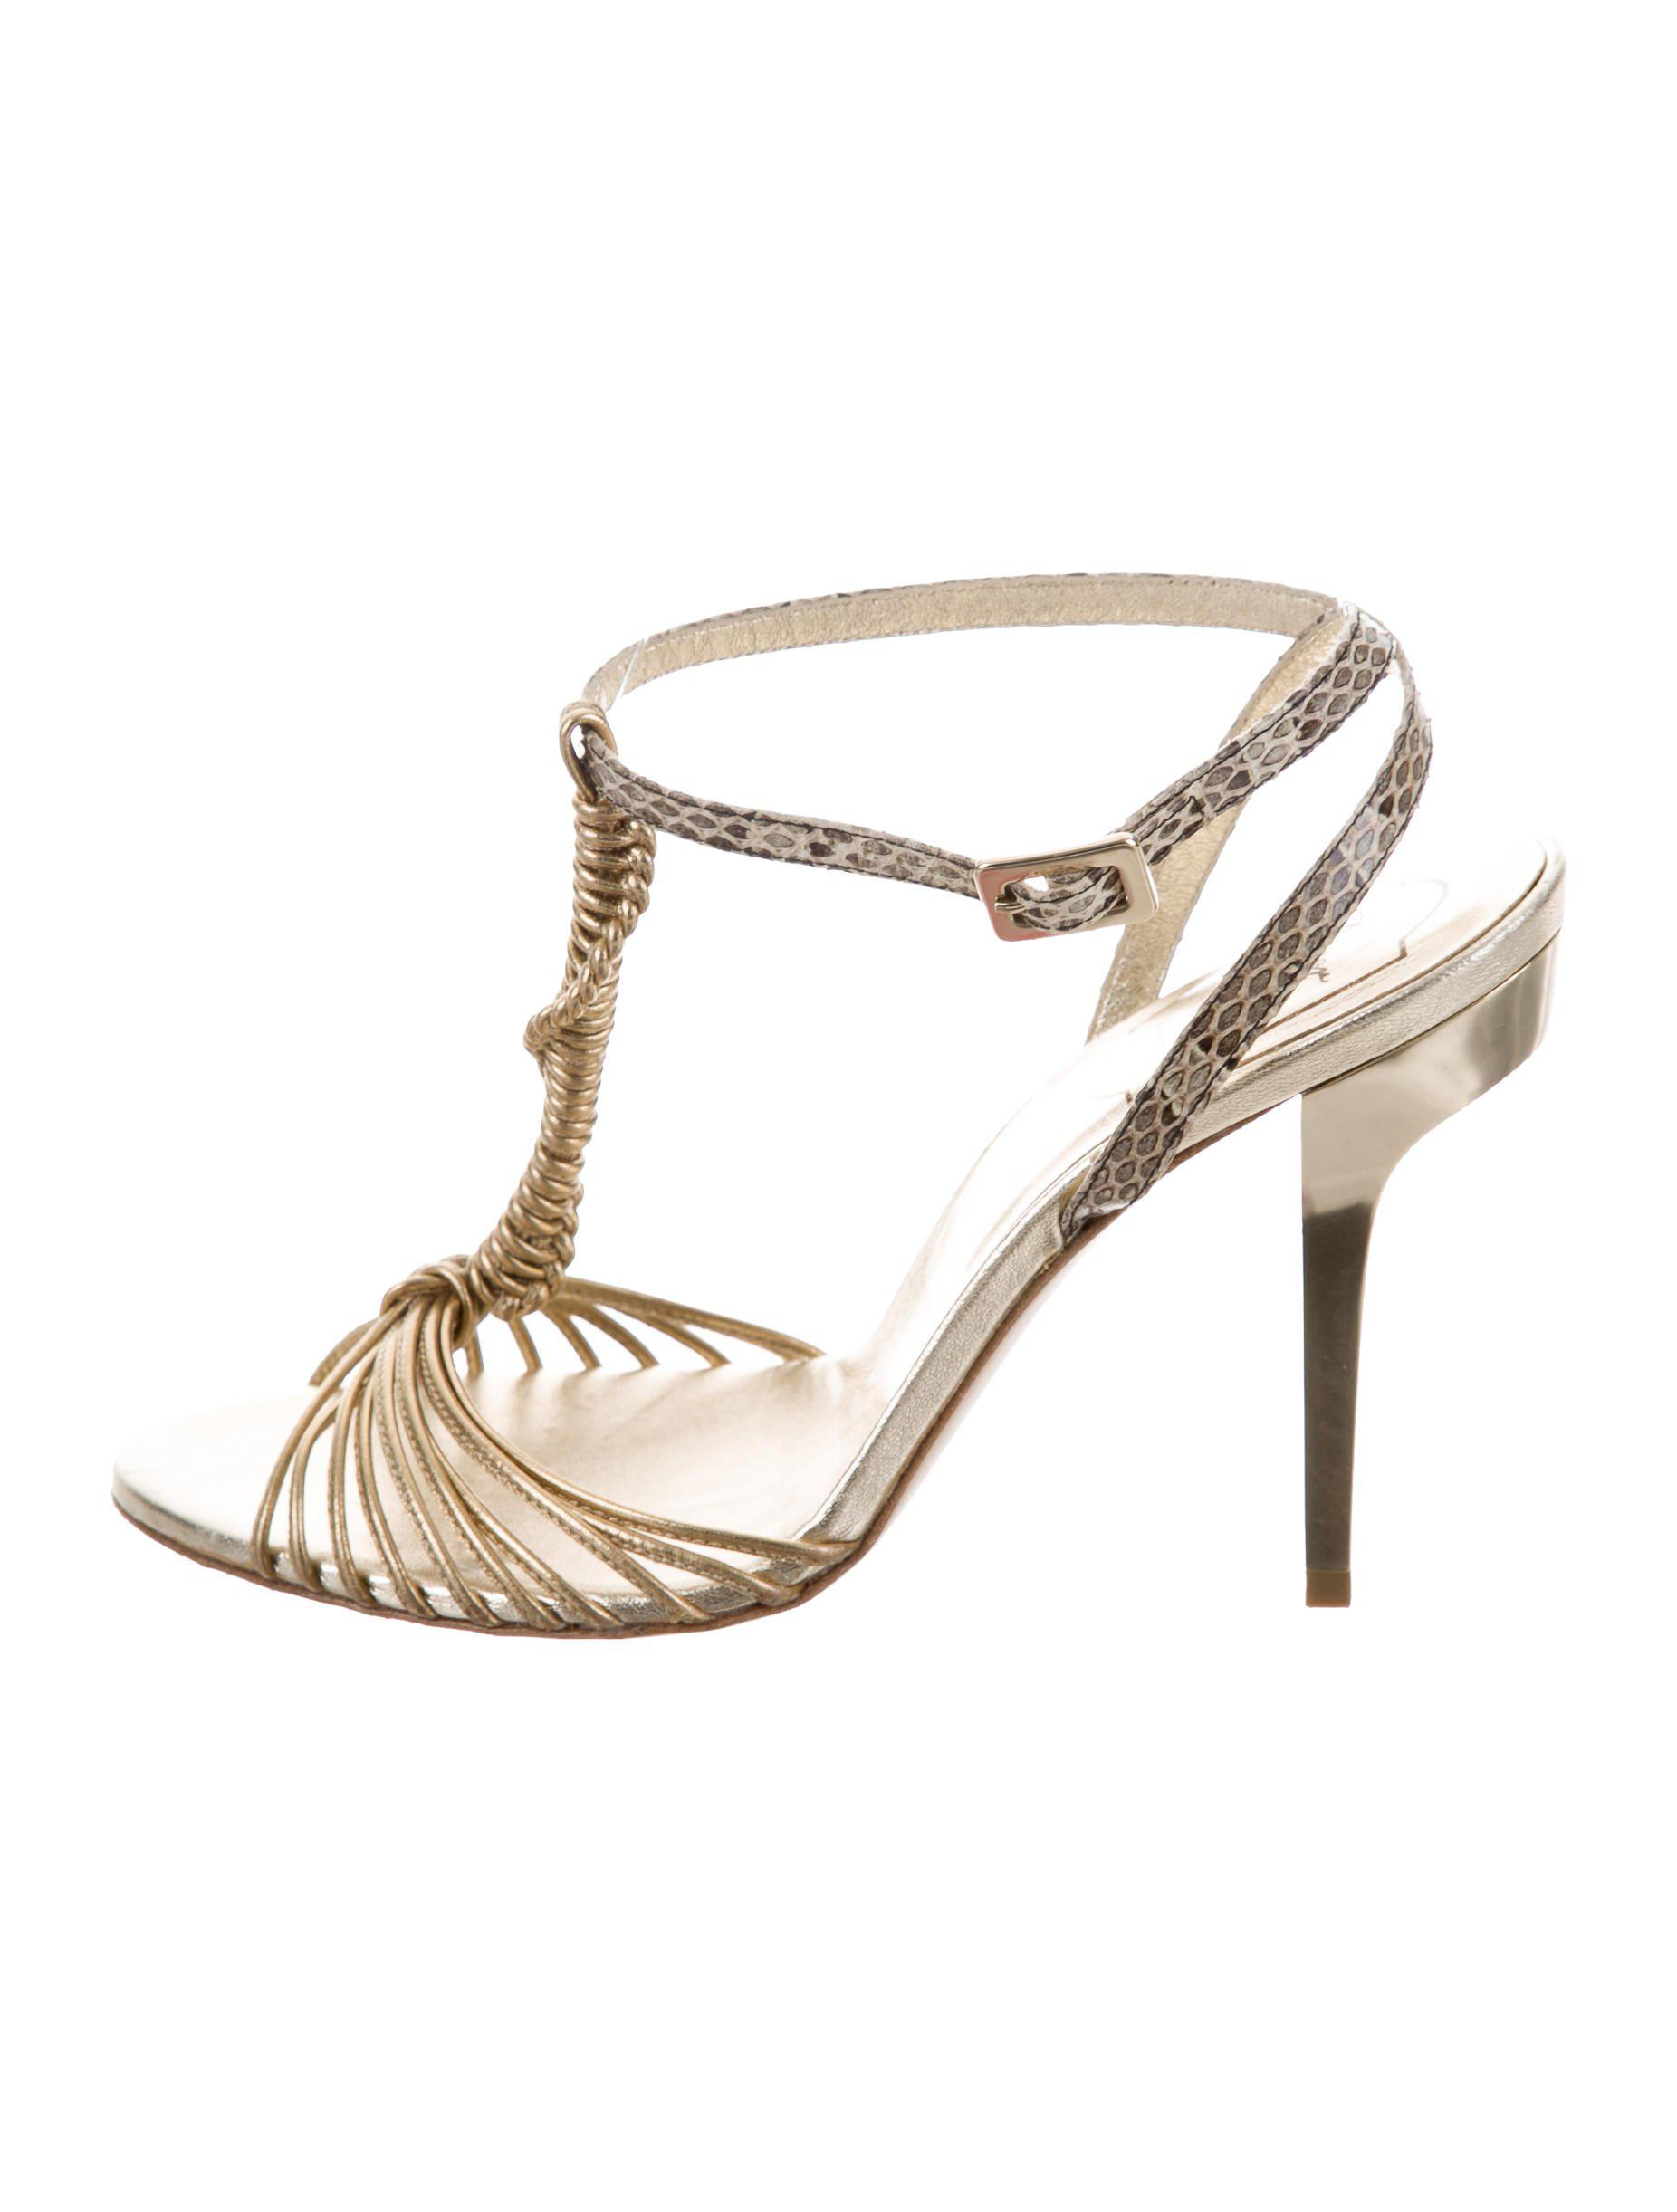 Roger Vivier Metallic Snakeskin Sandals ebay online cheap sale best place 2014 newest cheap online big sale online Sh68d